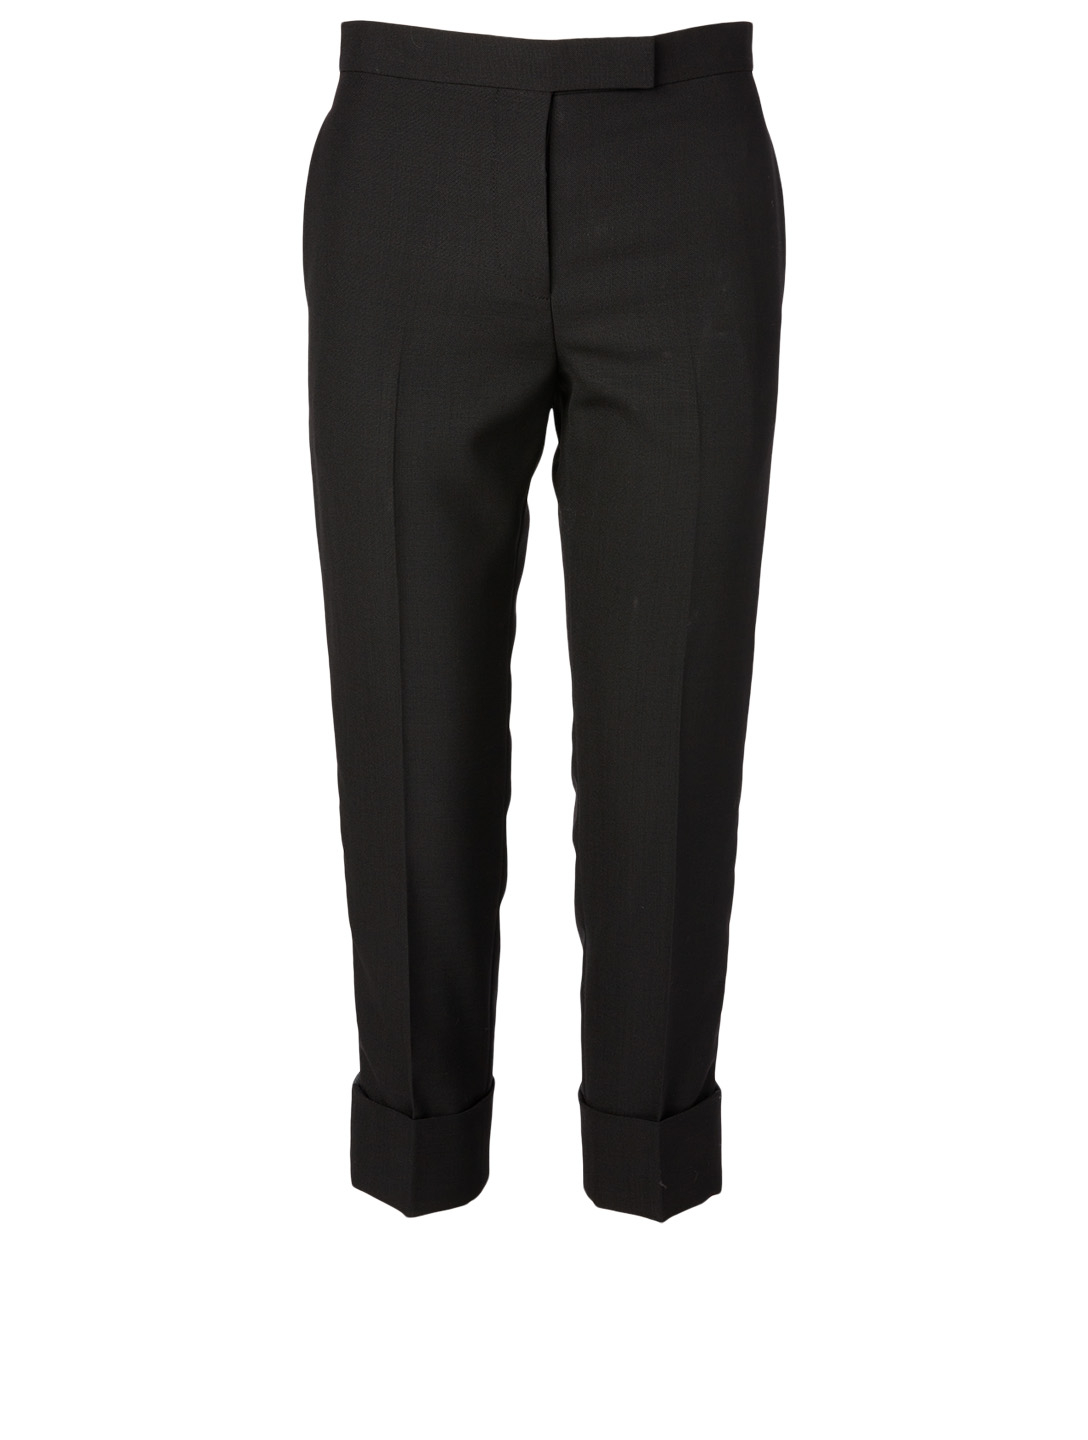 THOM BROWNE Wool Tuxedo Stripe Pants With Back Strap Women's Black